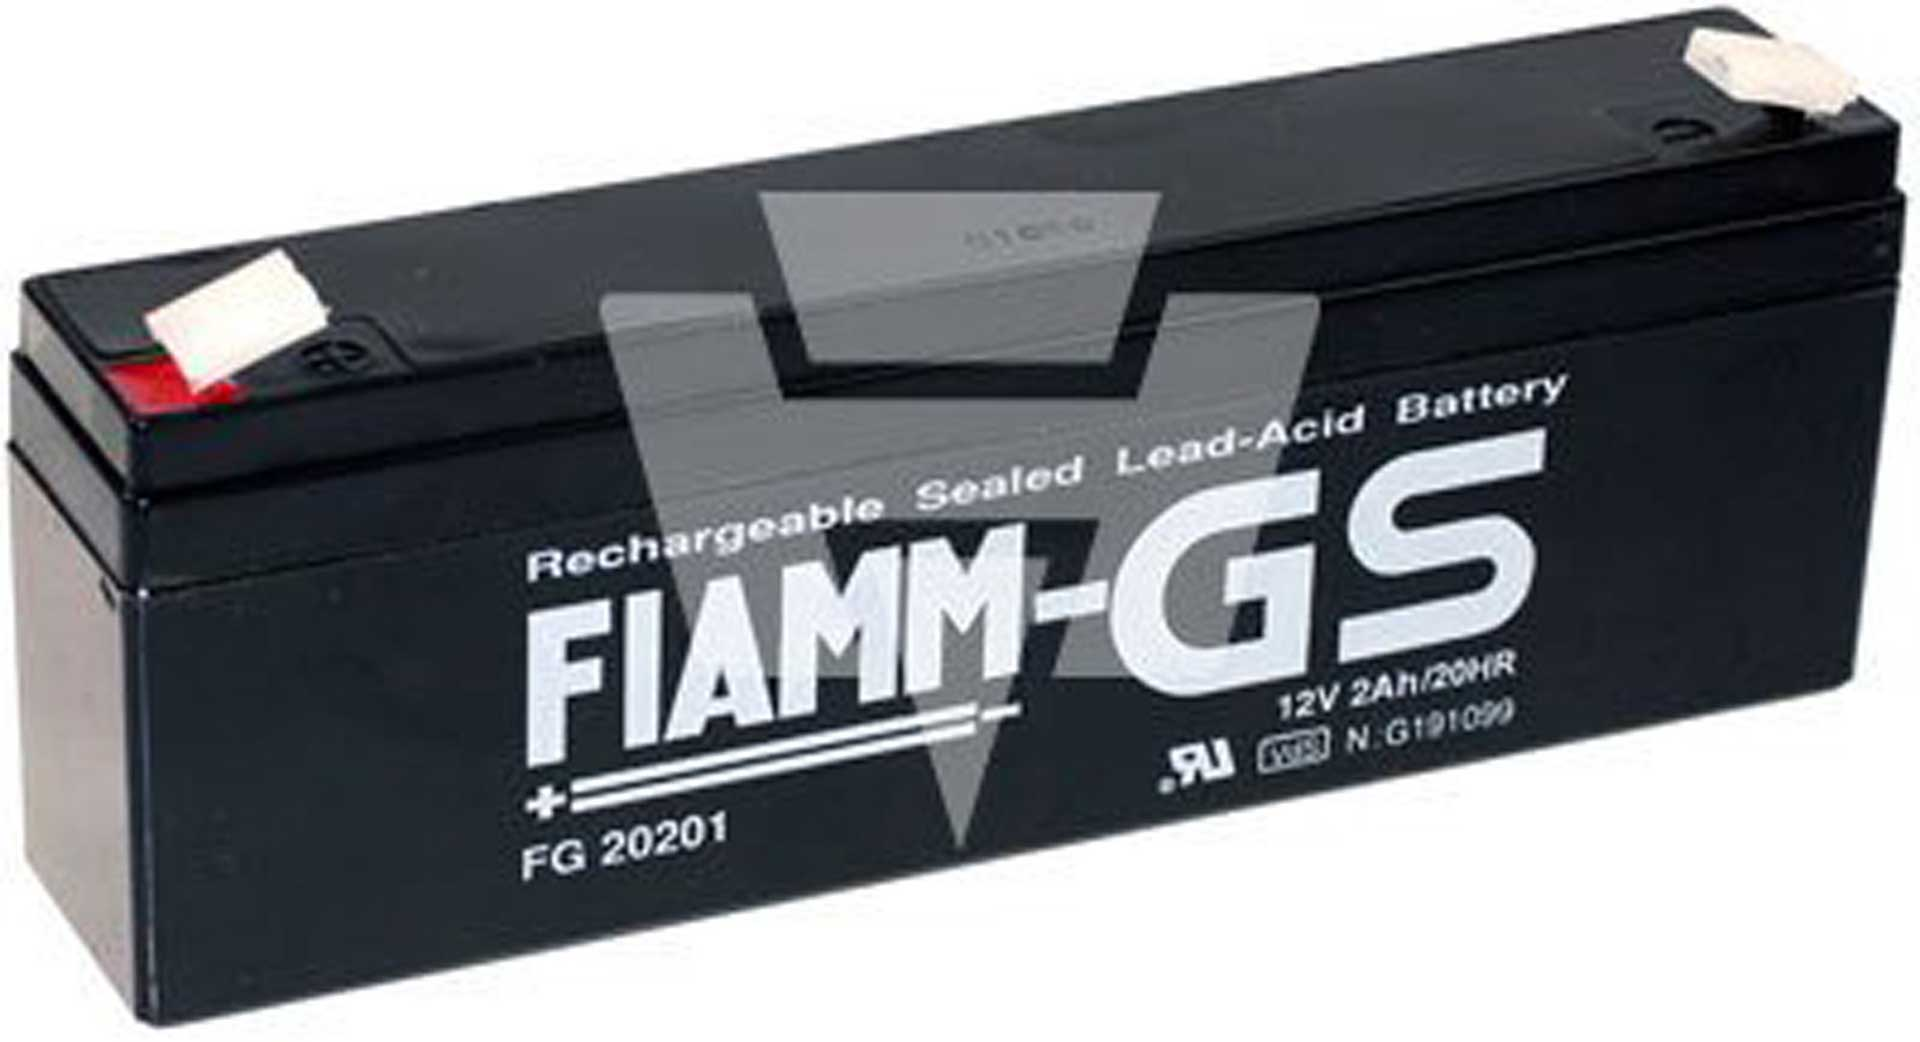 FIAMM LEAD-ACID BATTERY FG20201 12V/2AH PB FASTON 4.8